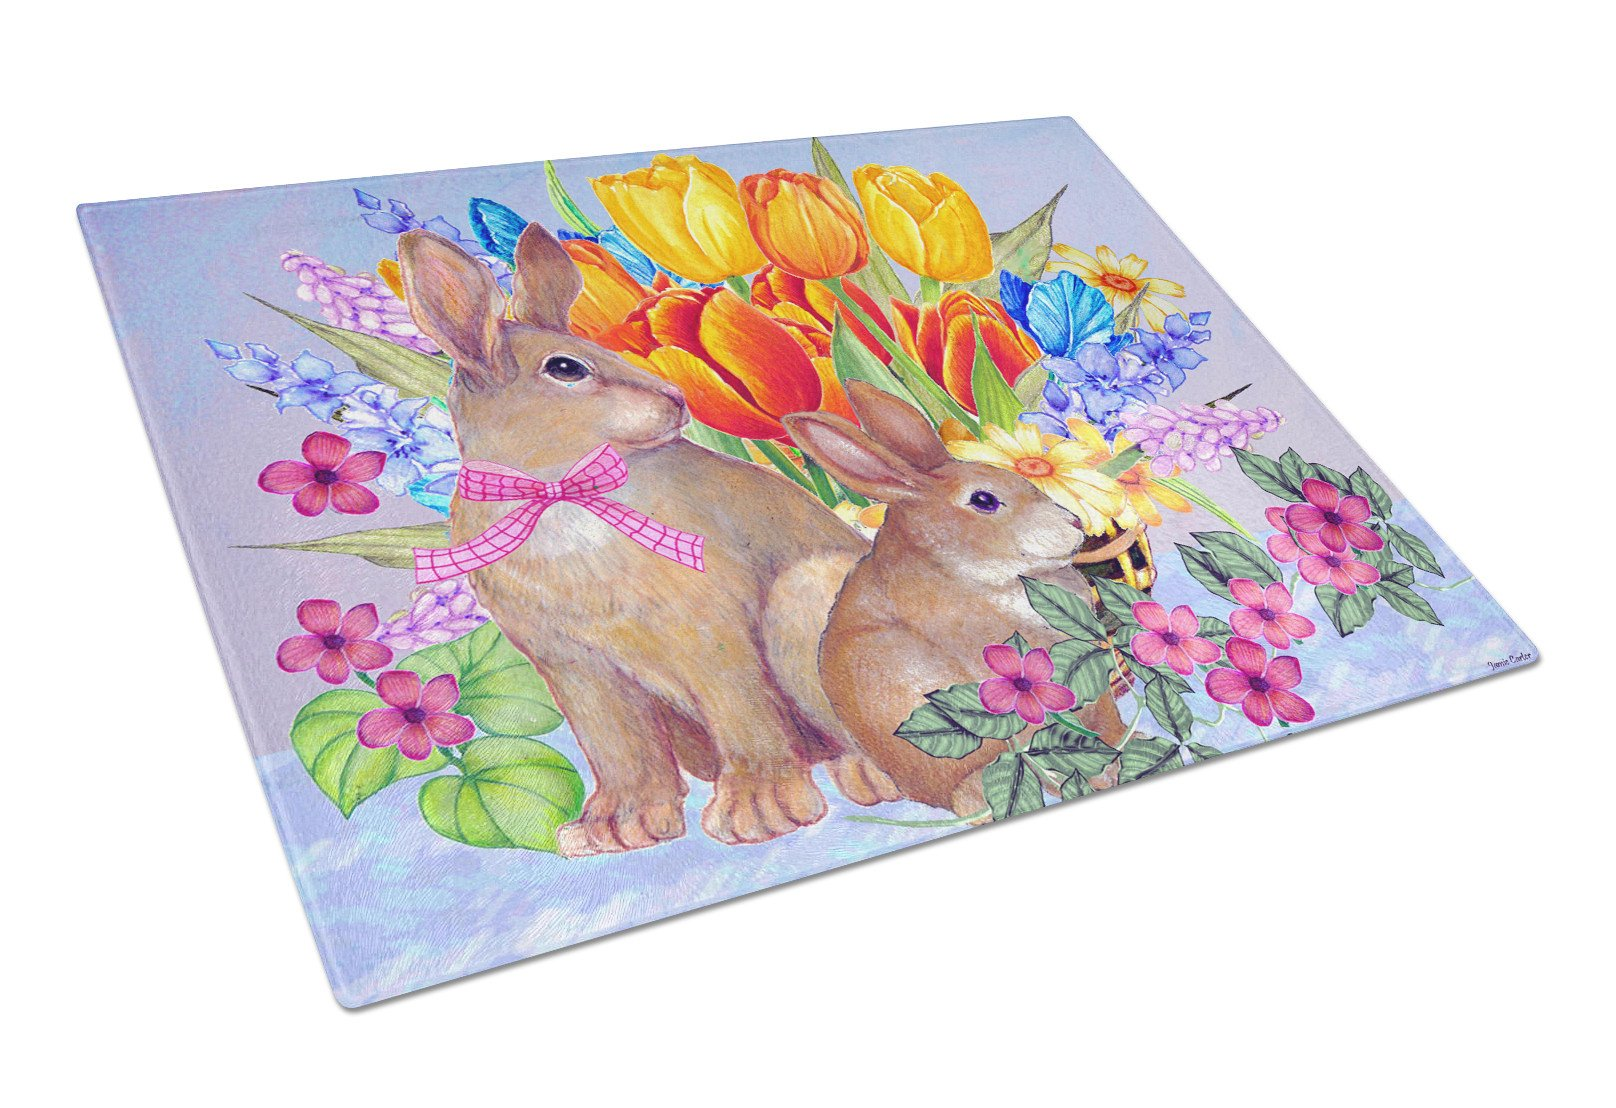 New Beginnings II Easter Rabbit Glass Cutting Board Large PJC1067LCB by Caroline's Treasures